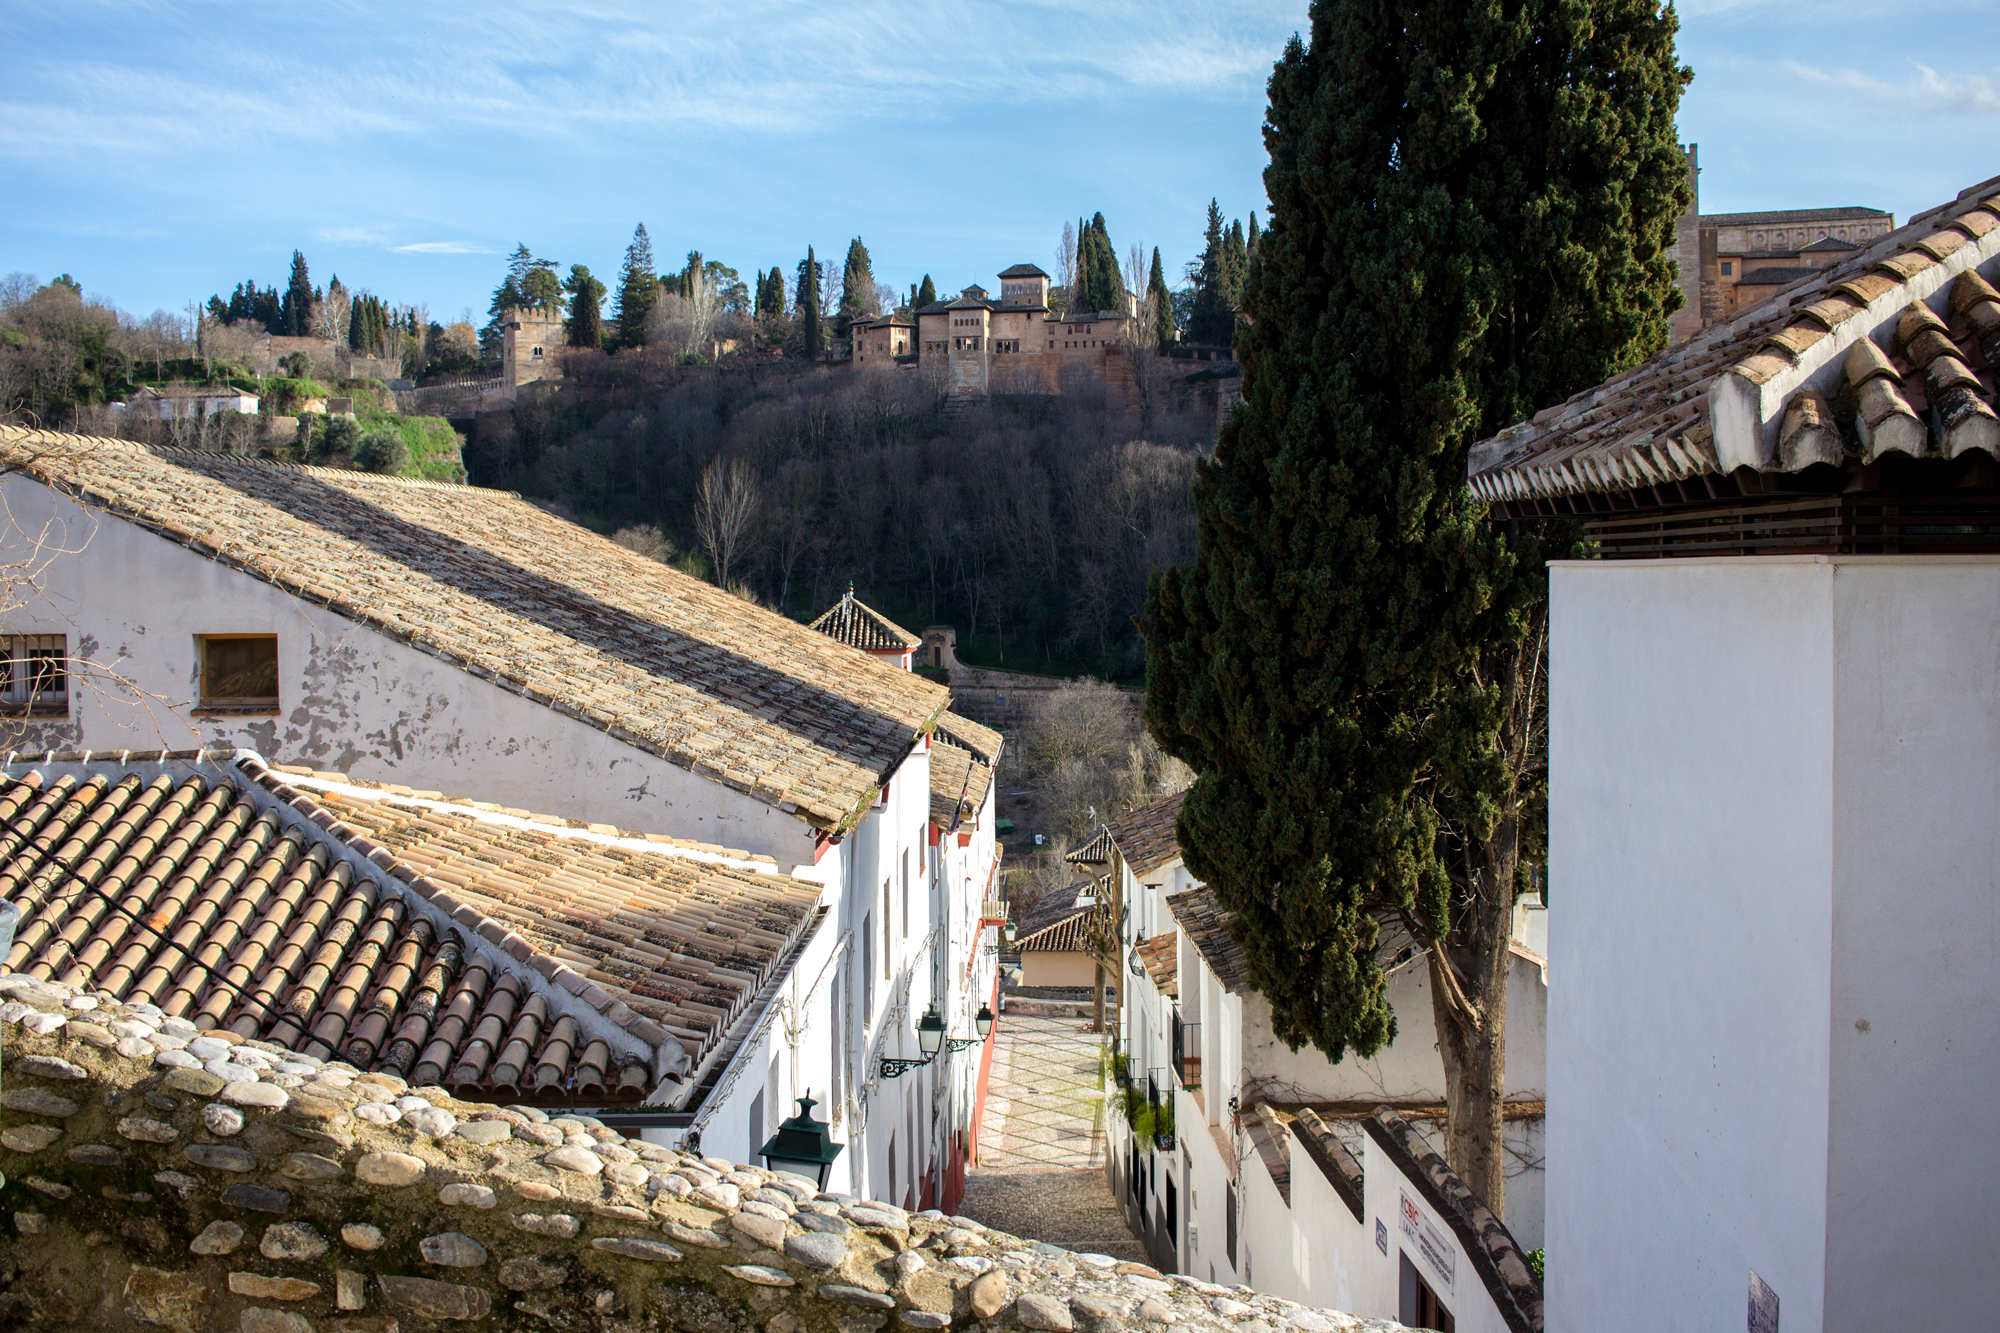 The First Quarter - What's Going on | the Alhambra Granada Spain | awaywithkatie.com